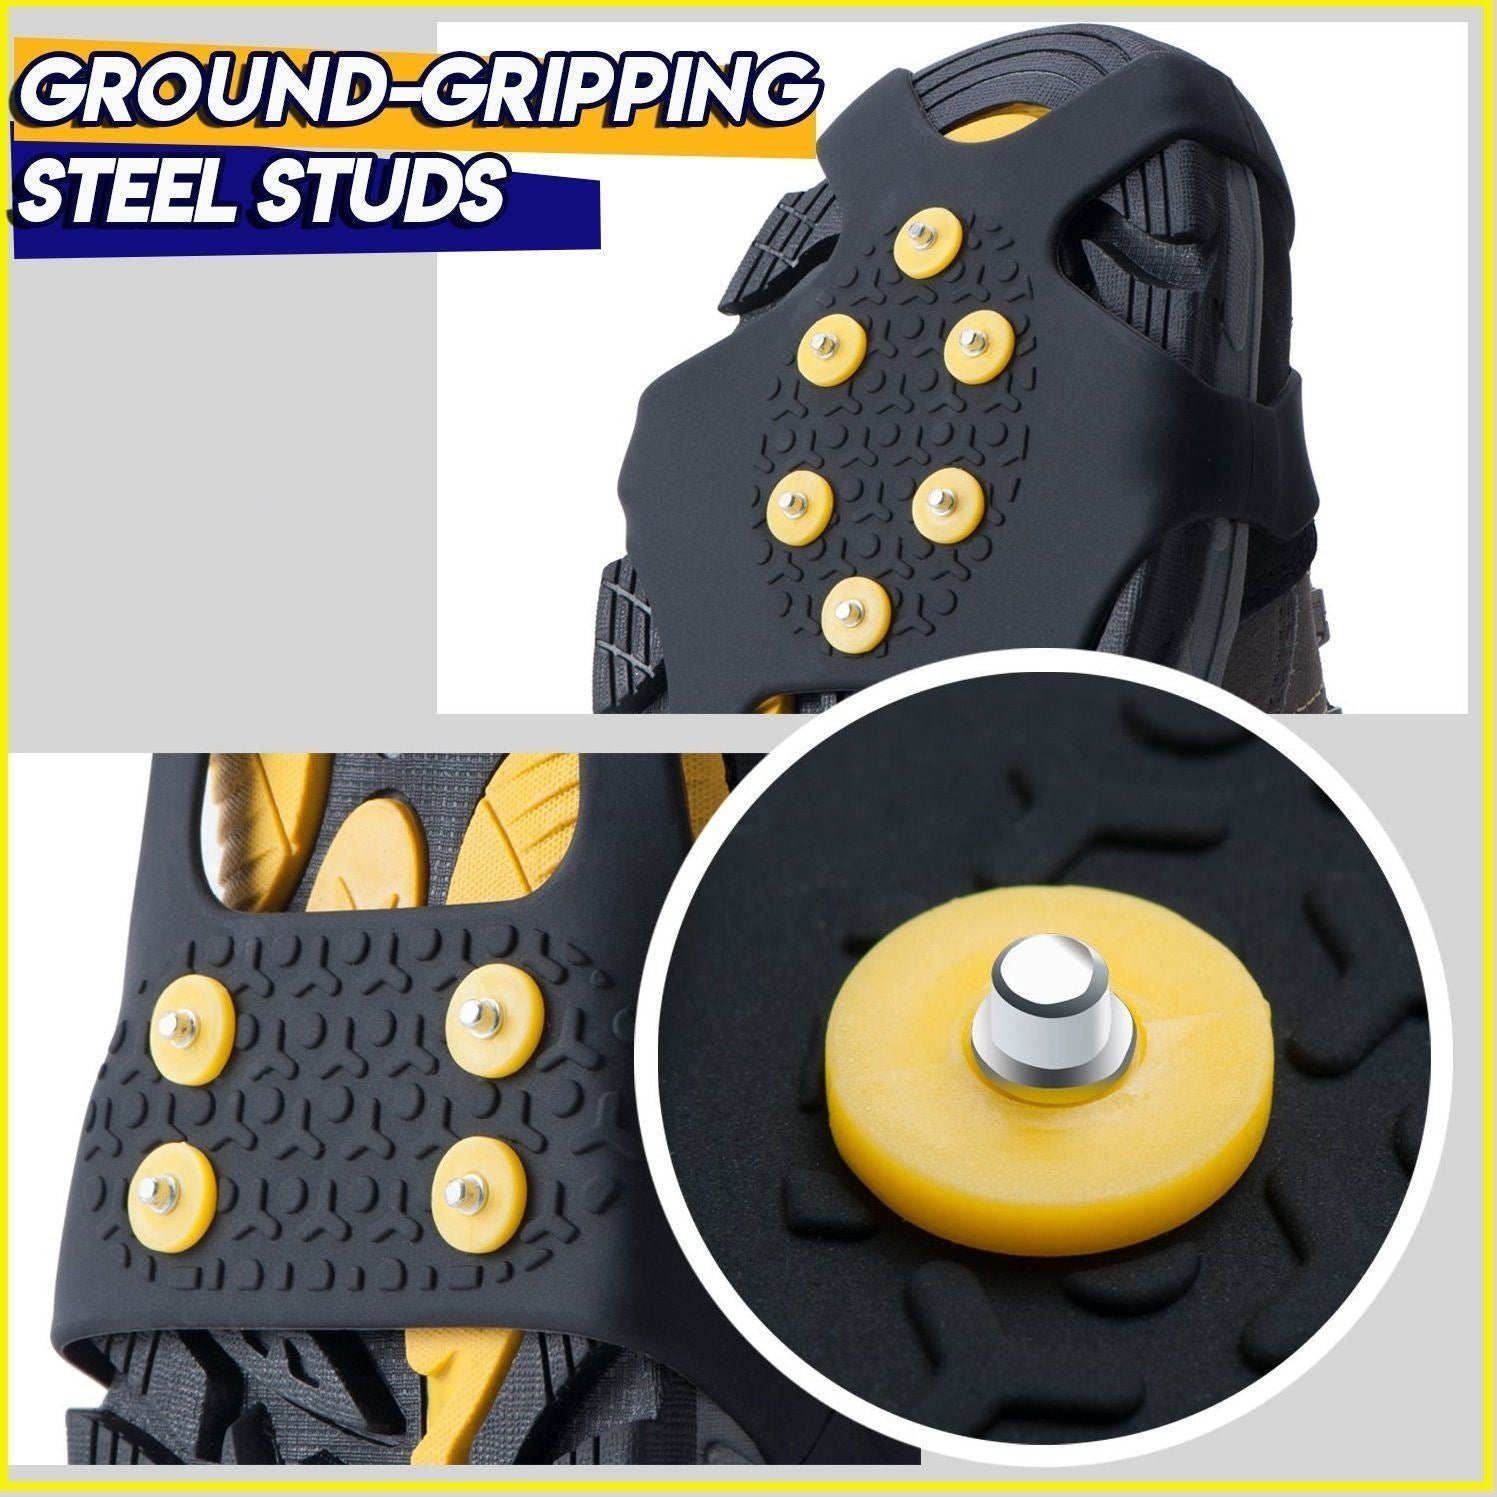 HUGO™: 10-Stud Ice Gripper Spike Anti-Skid